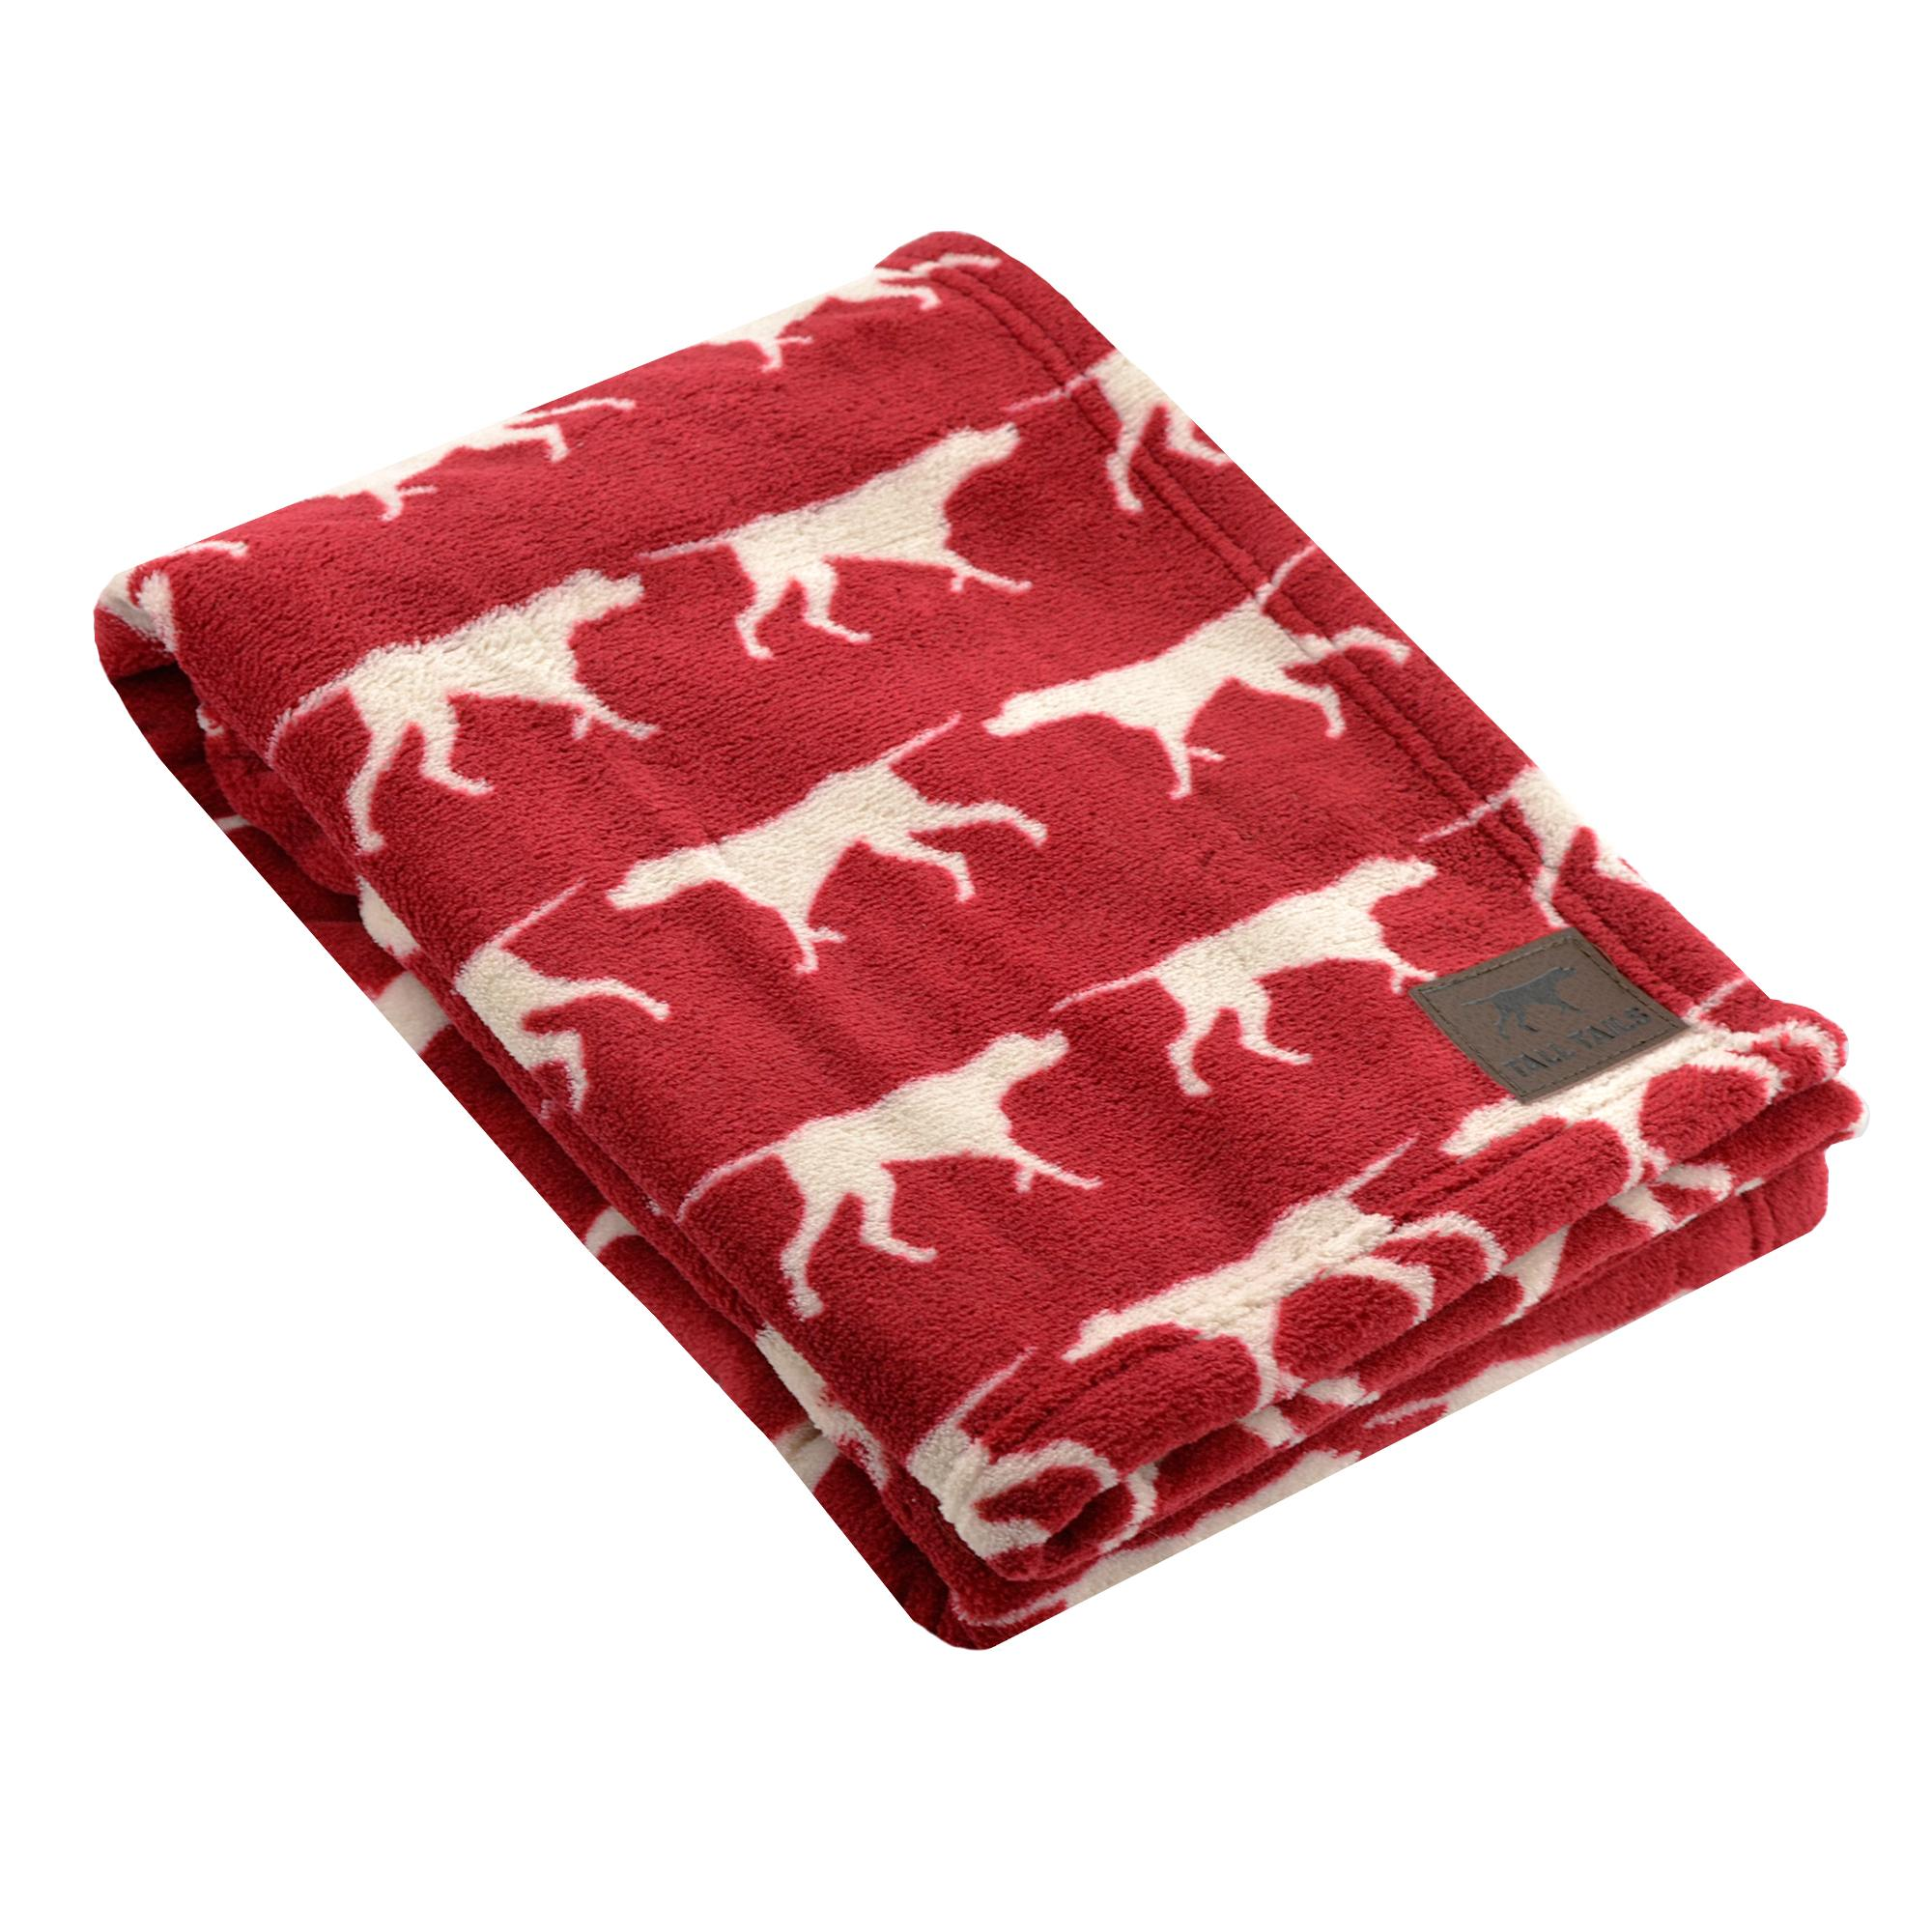 Tall Tails Red Icon Fleece Dog Blanket Image